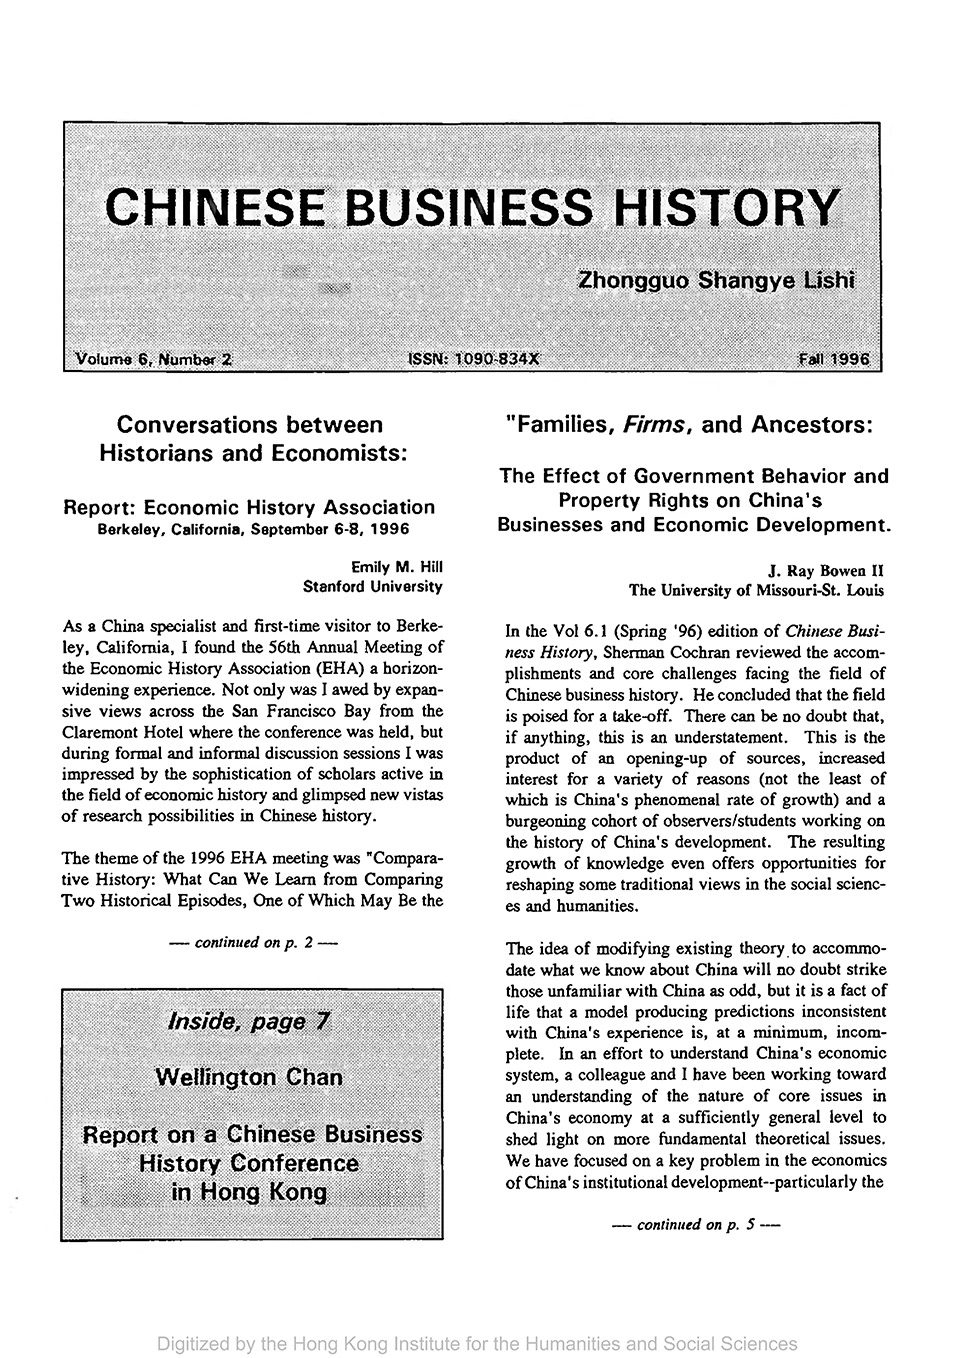 Cover of Chinese Business History Journal Volume 6, Number 2